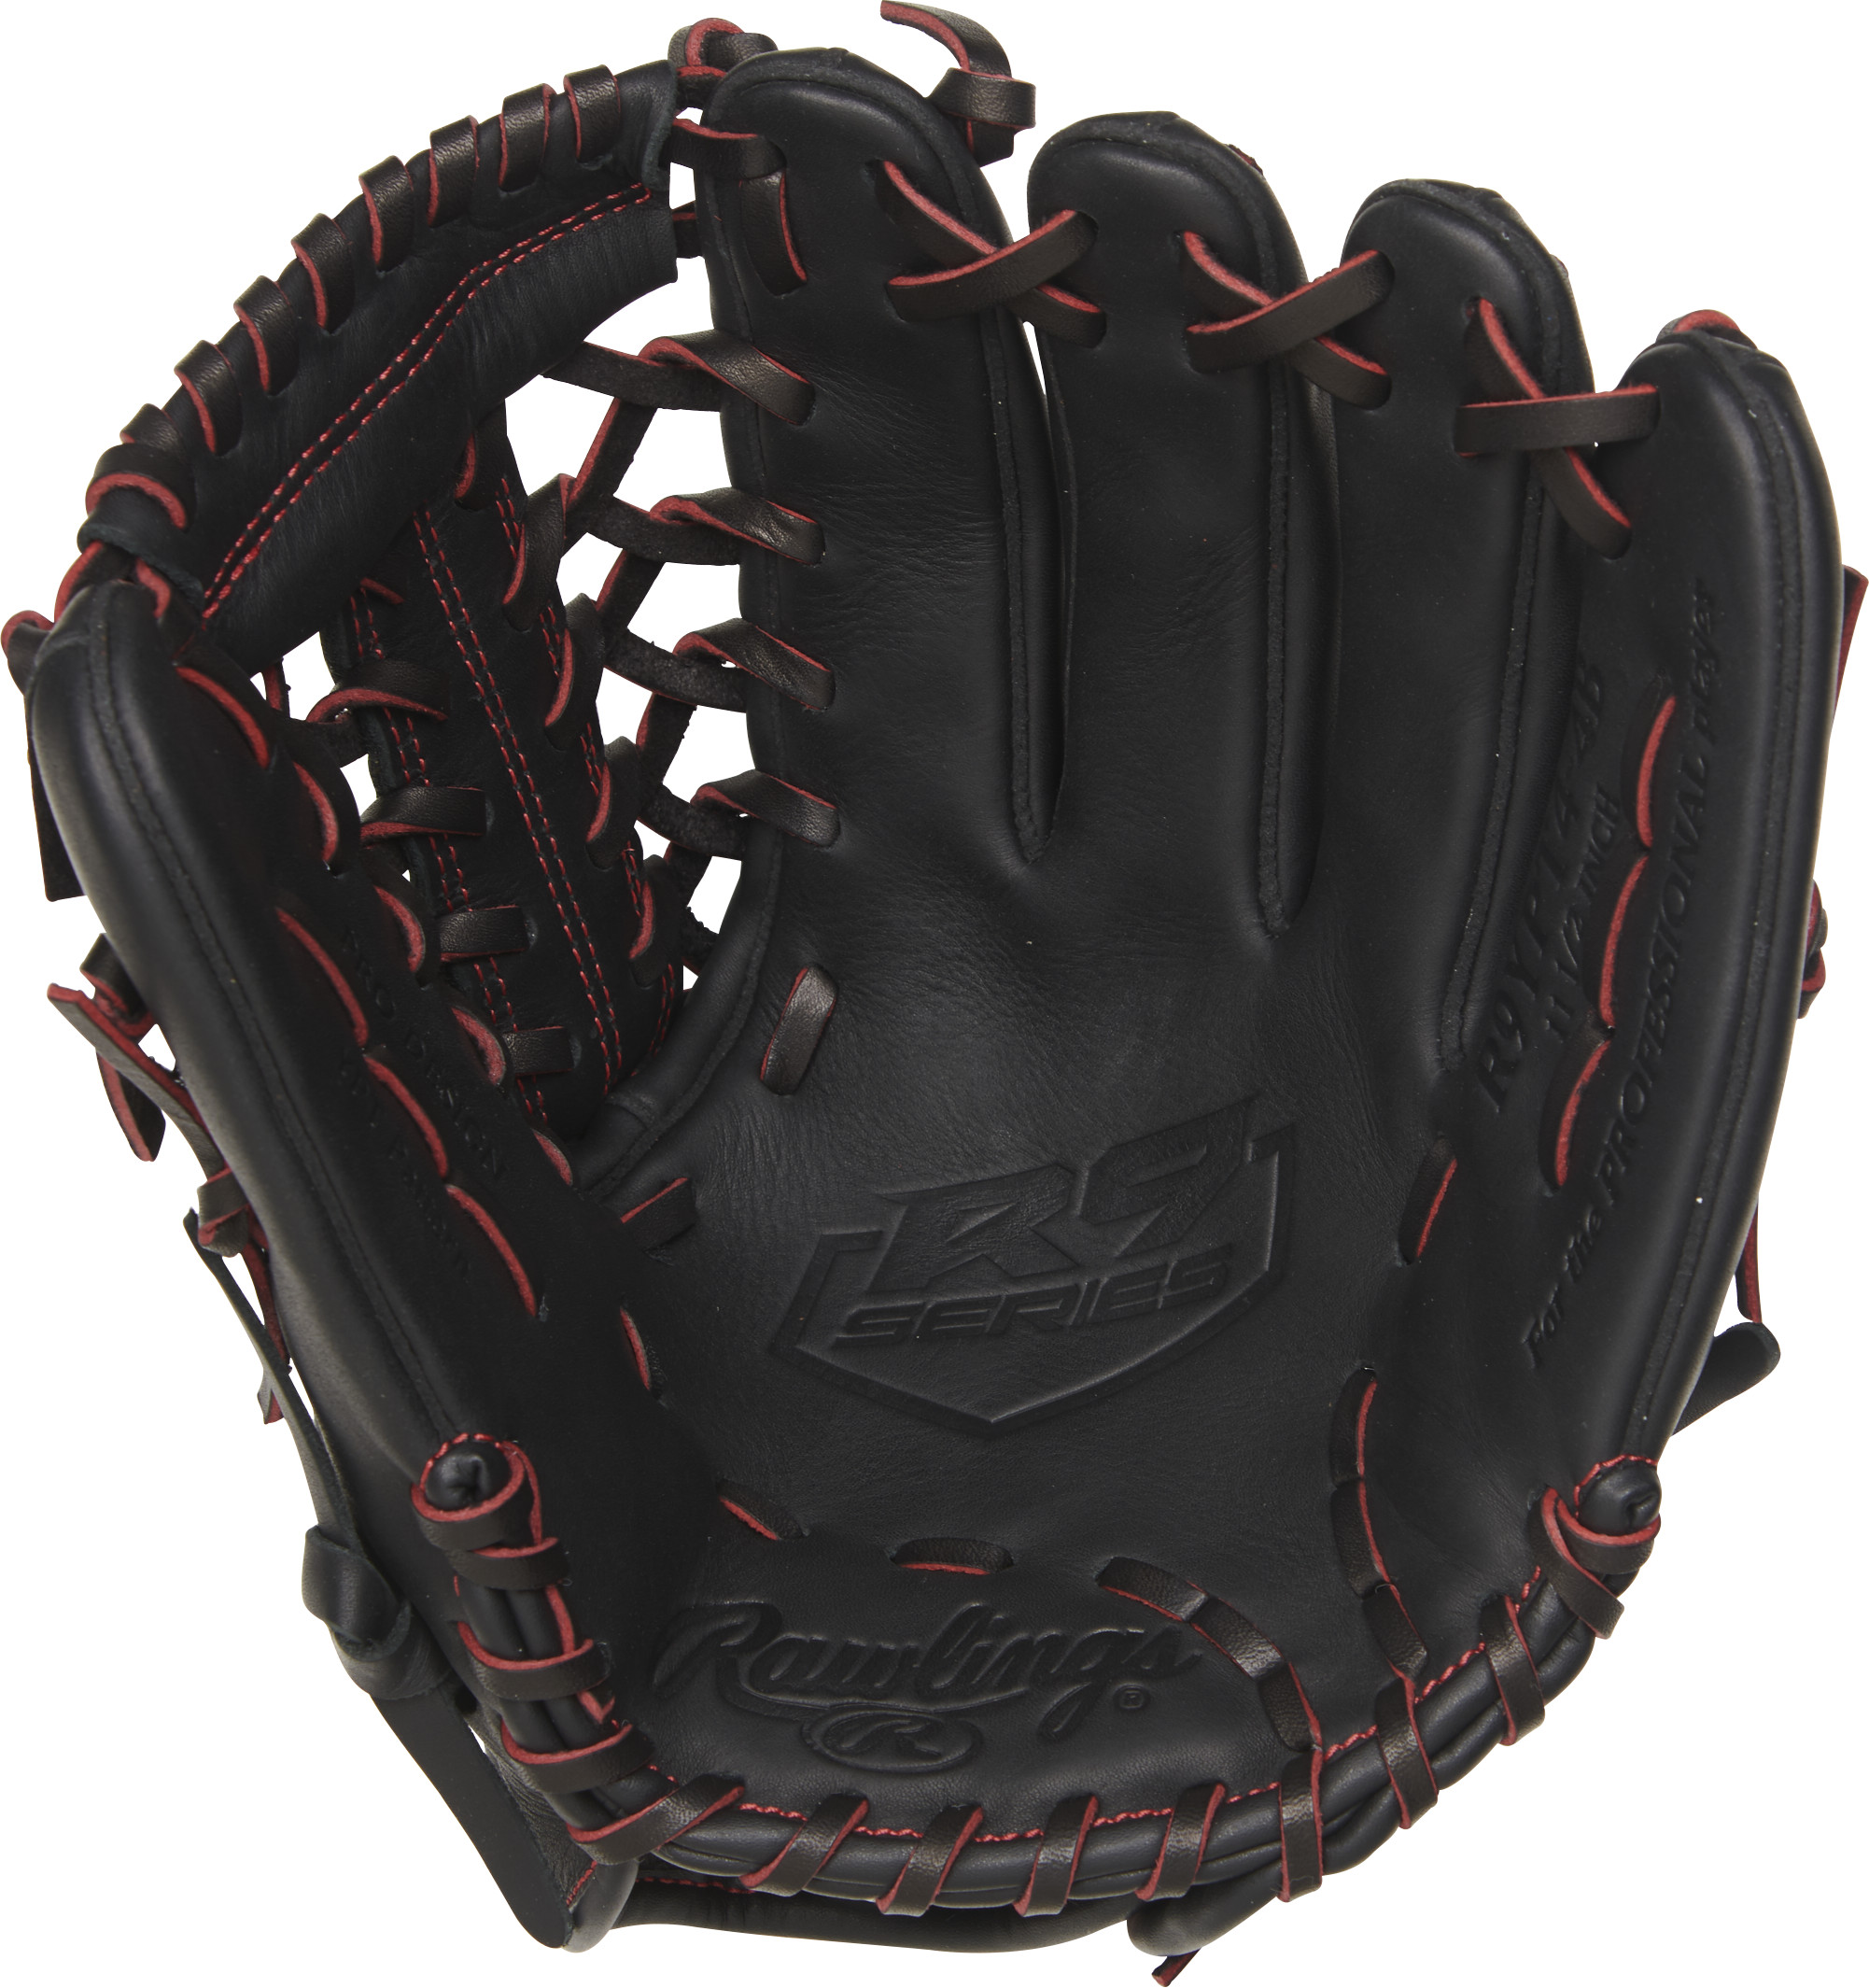 http://www.bestbatdeals.com/images/gloves/rawlings/R9YPT4-4B-1.jpg